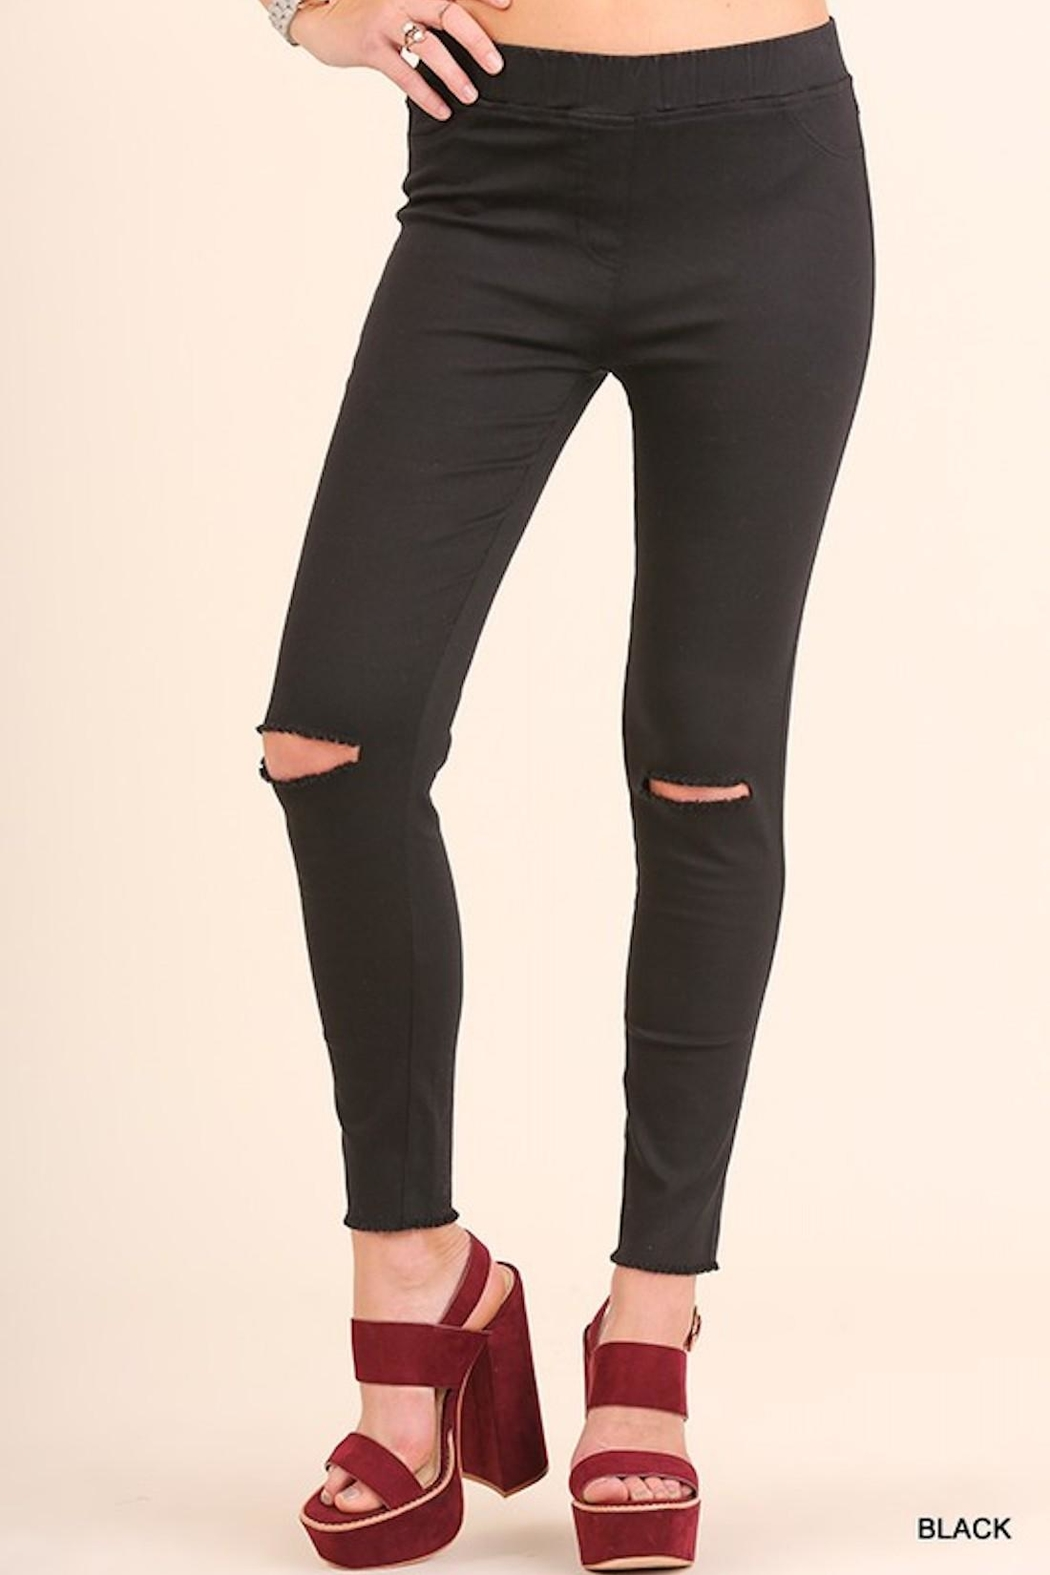 6db636b9bbb4bb Umgee USA High-Waist Knee-Cut Jeggings from Los Angeles by AndyLiz ...